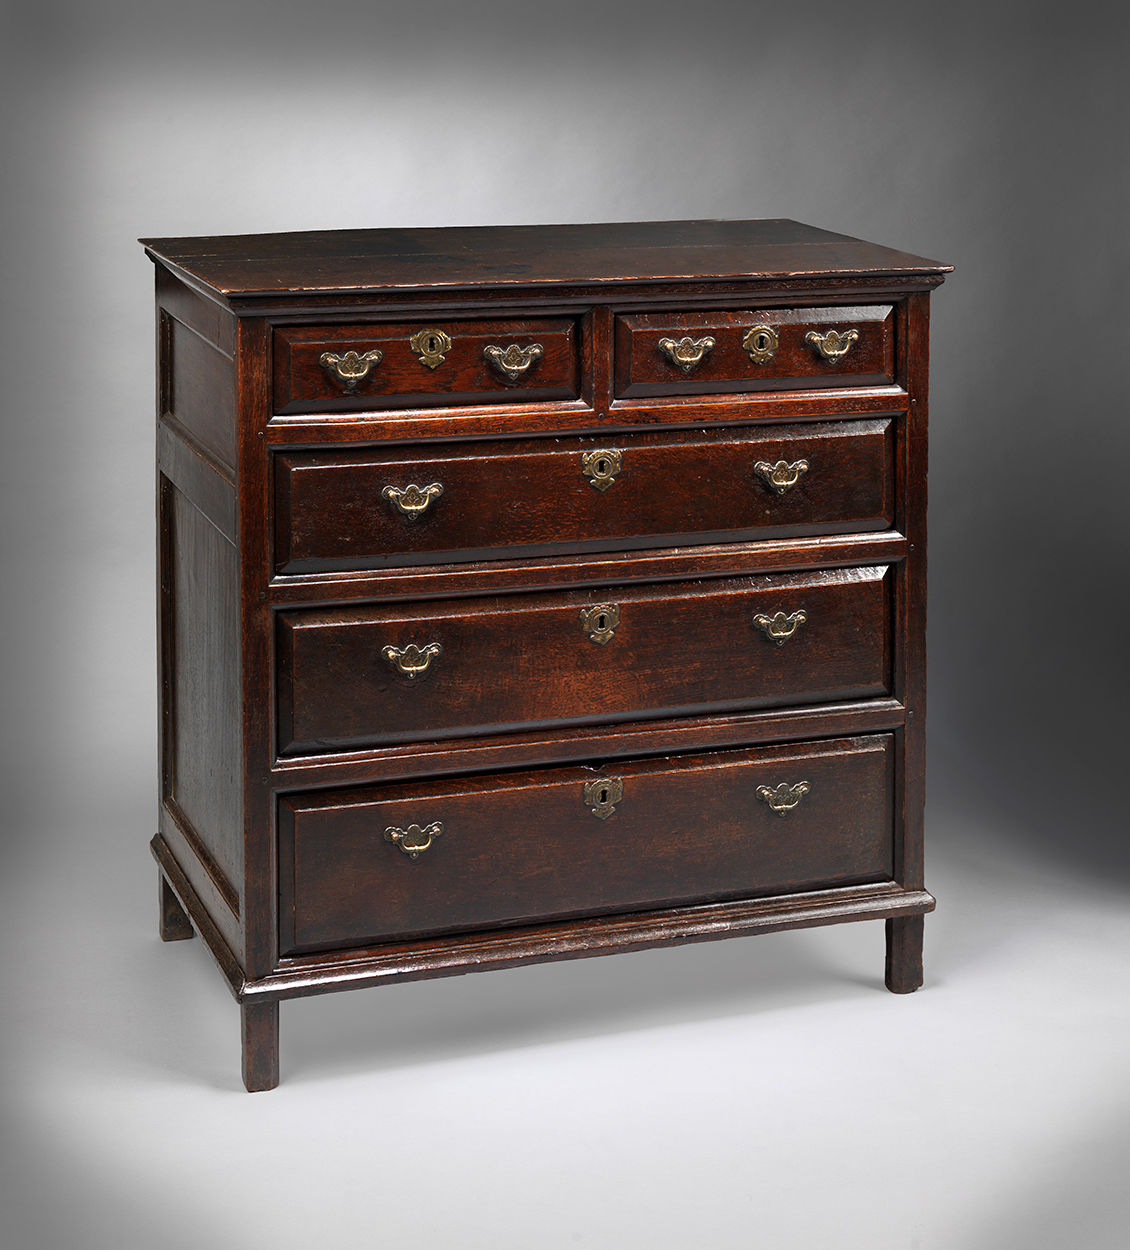 Fine Queen Anne Chest of Drawers